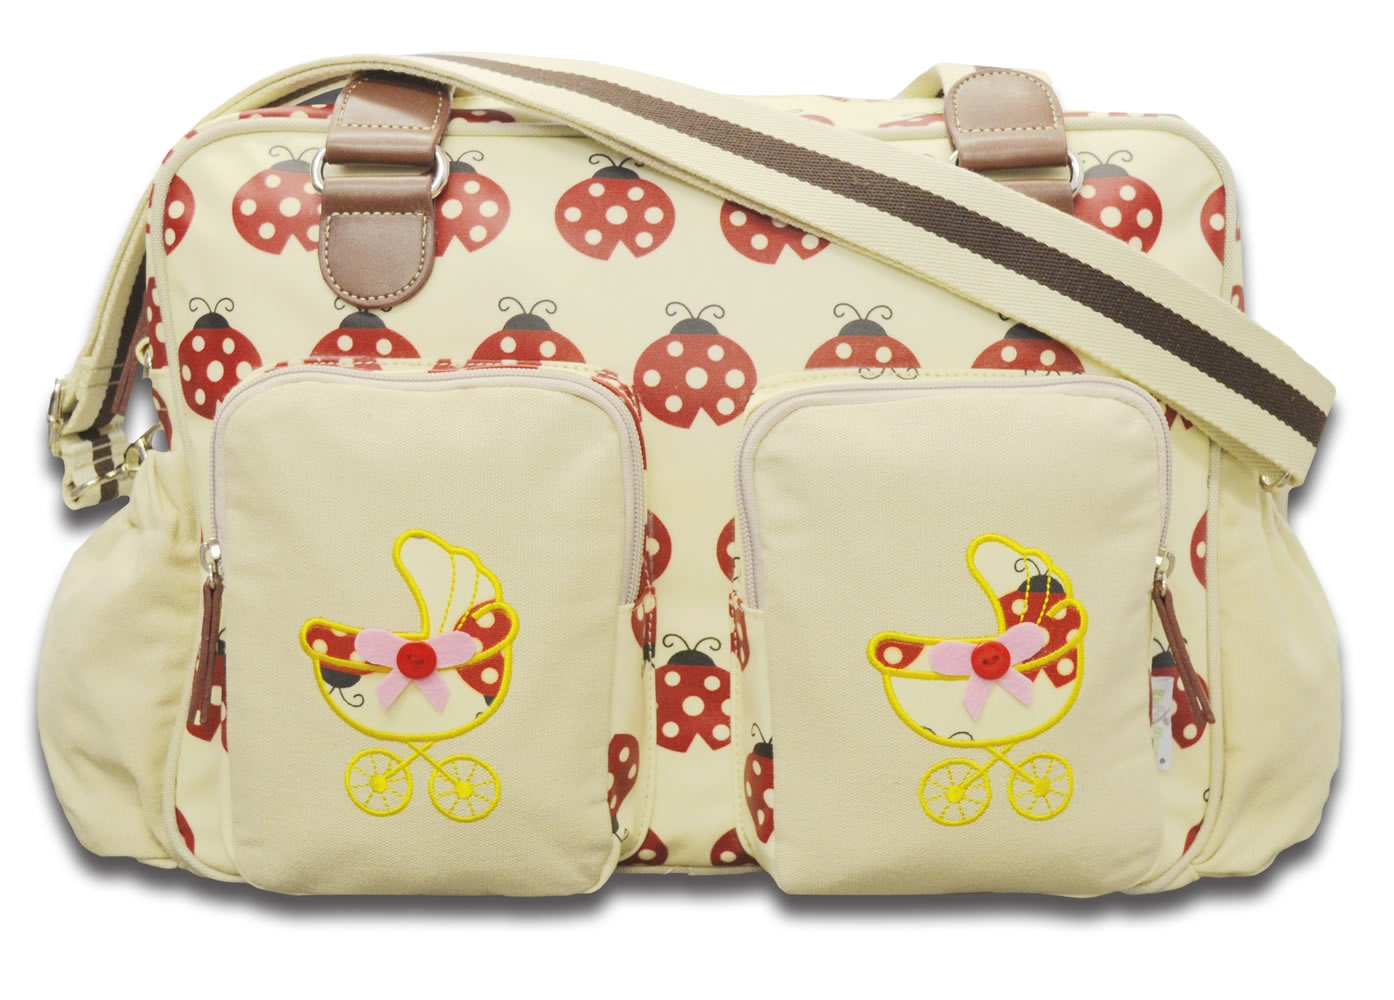 Kiddies Kingdom Changing Bags